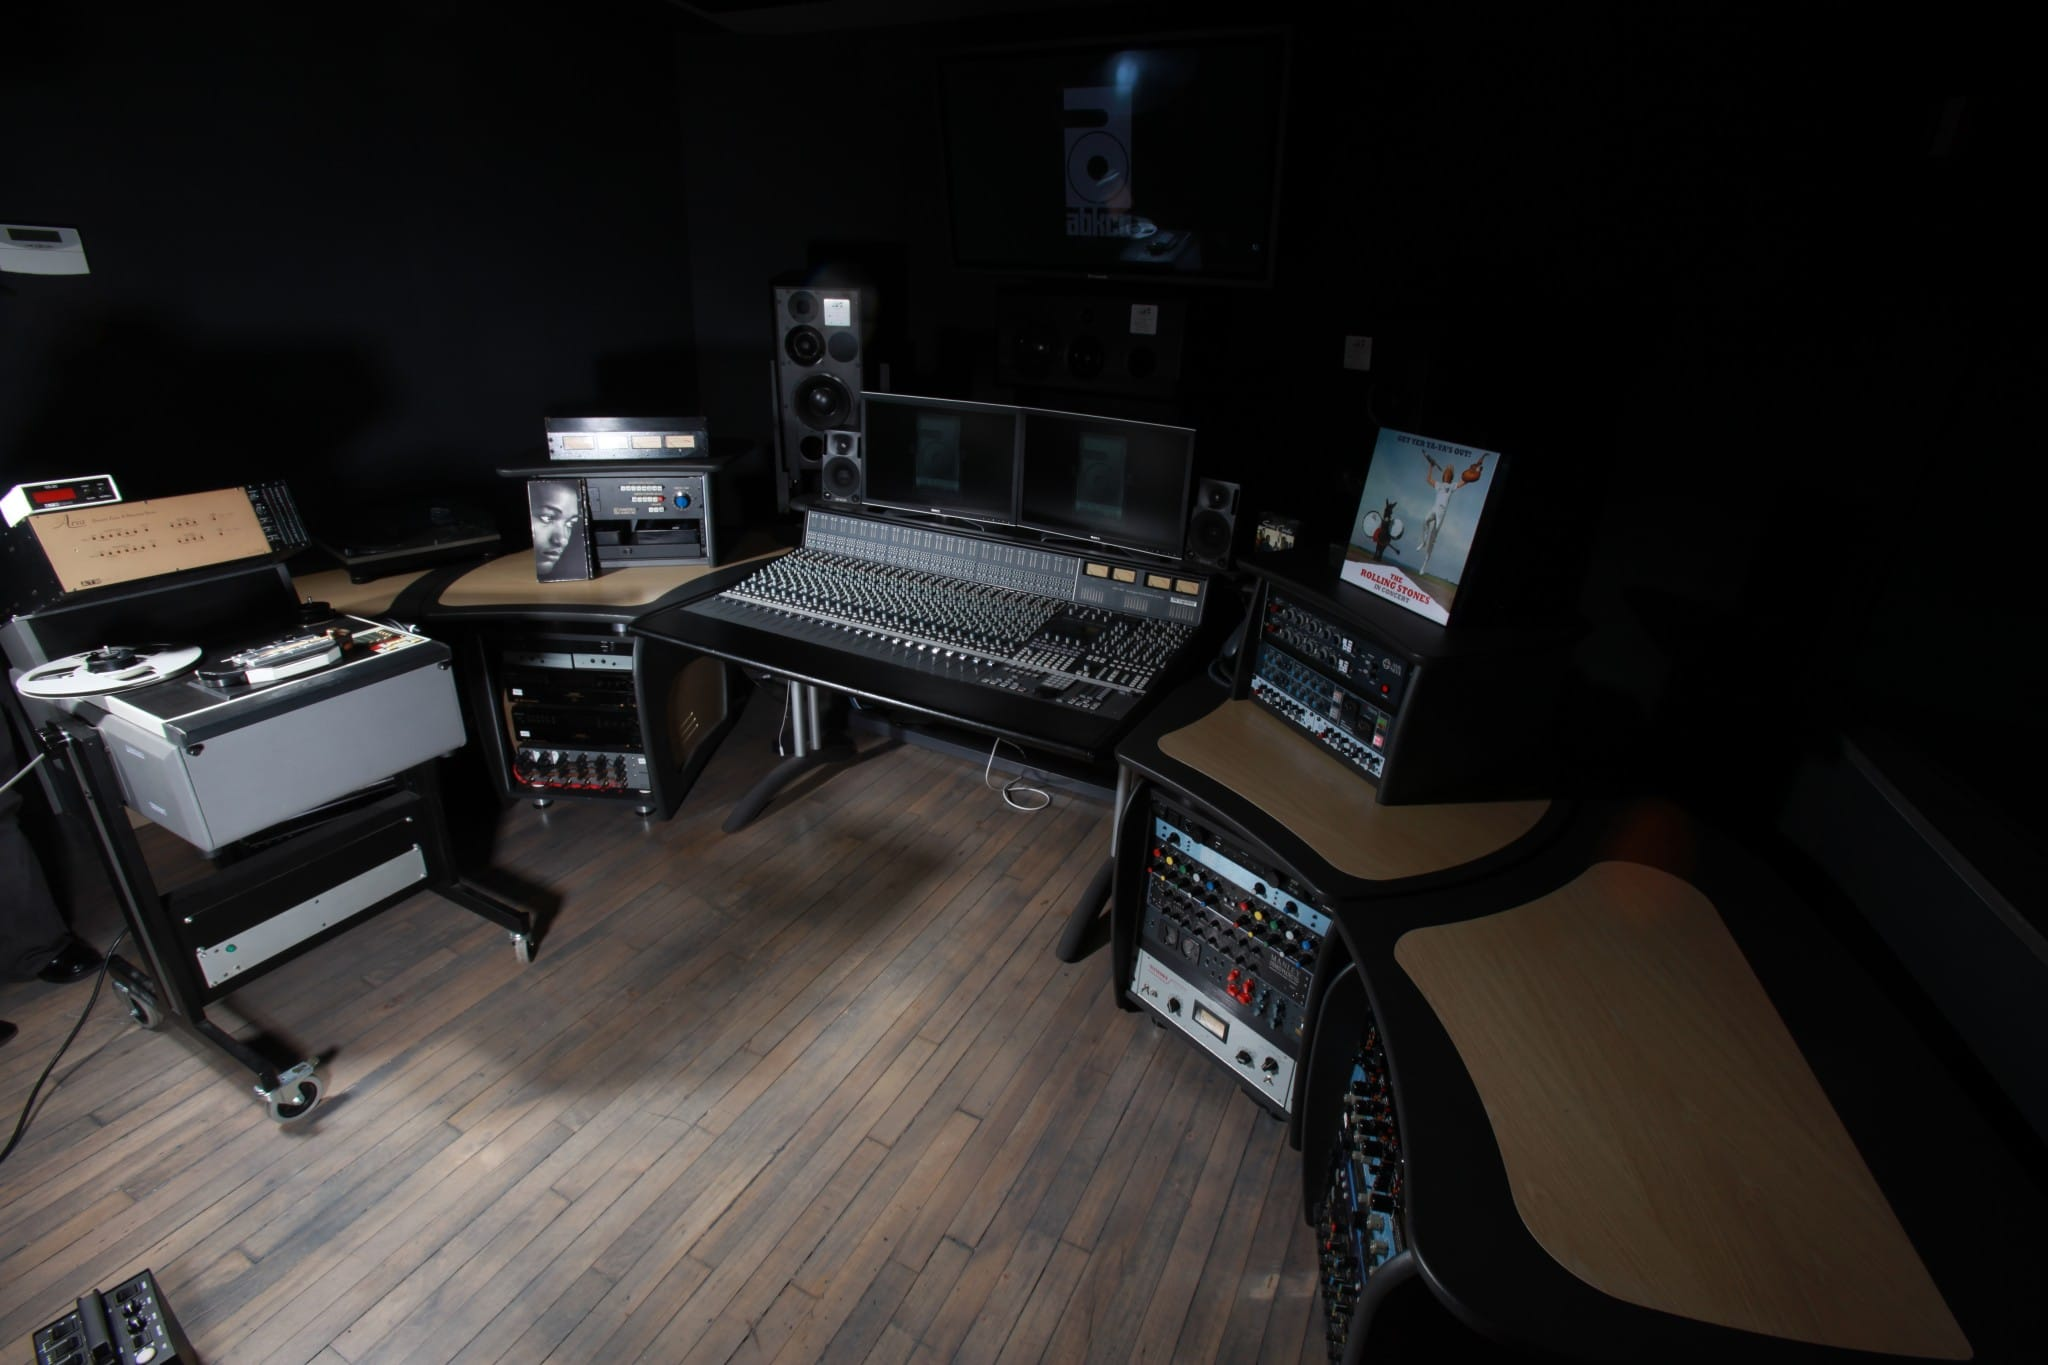 abkco-studio-wide-shot-1